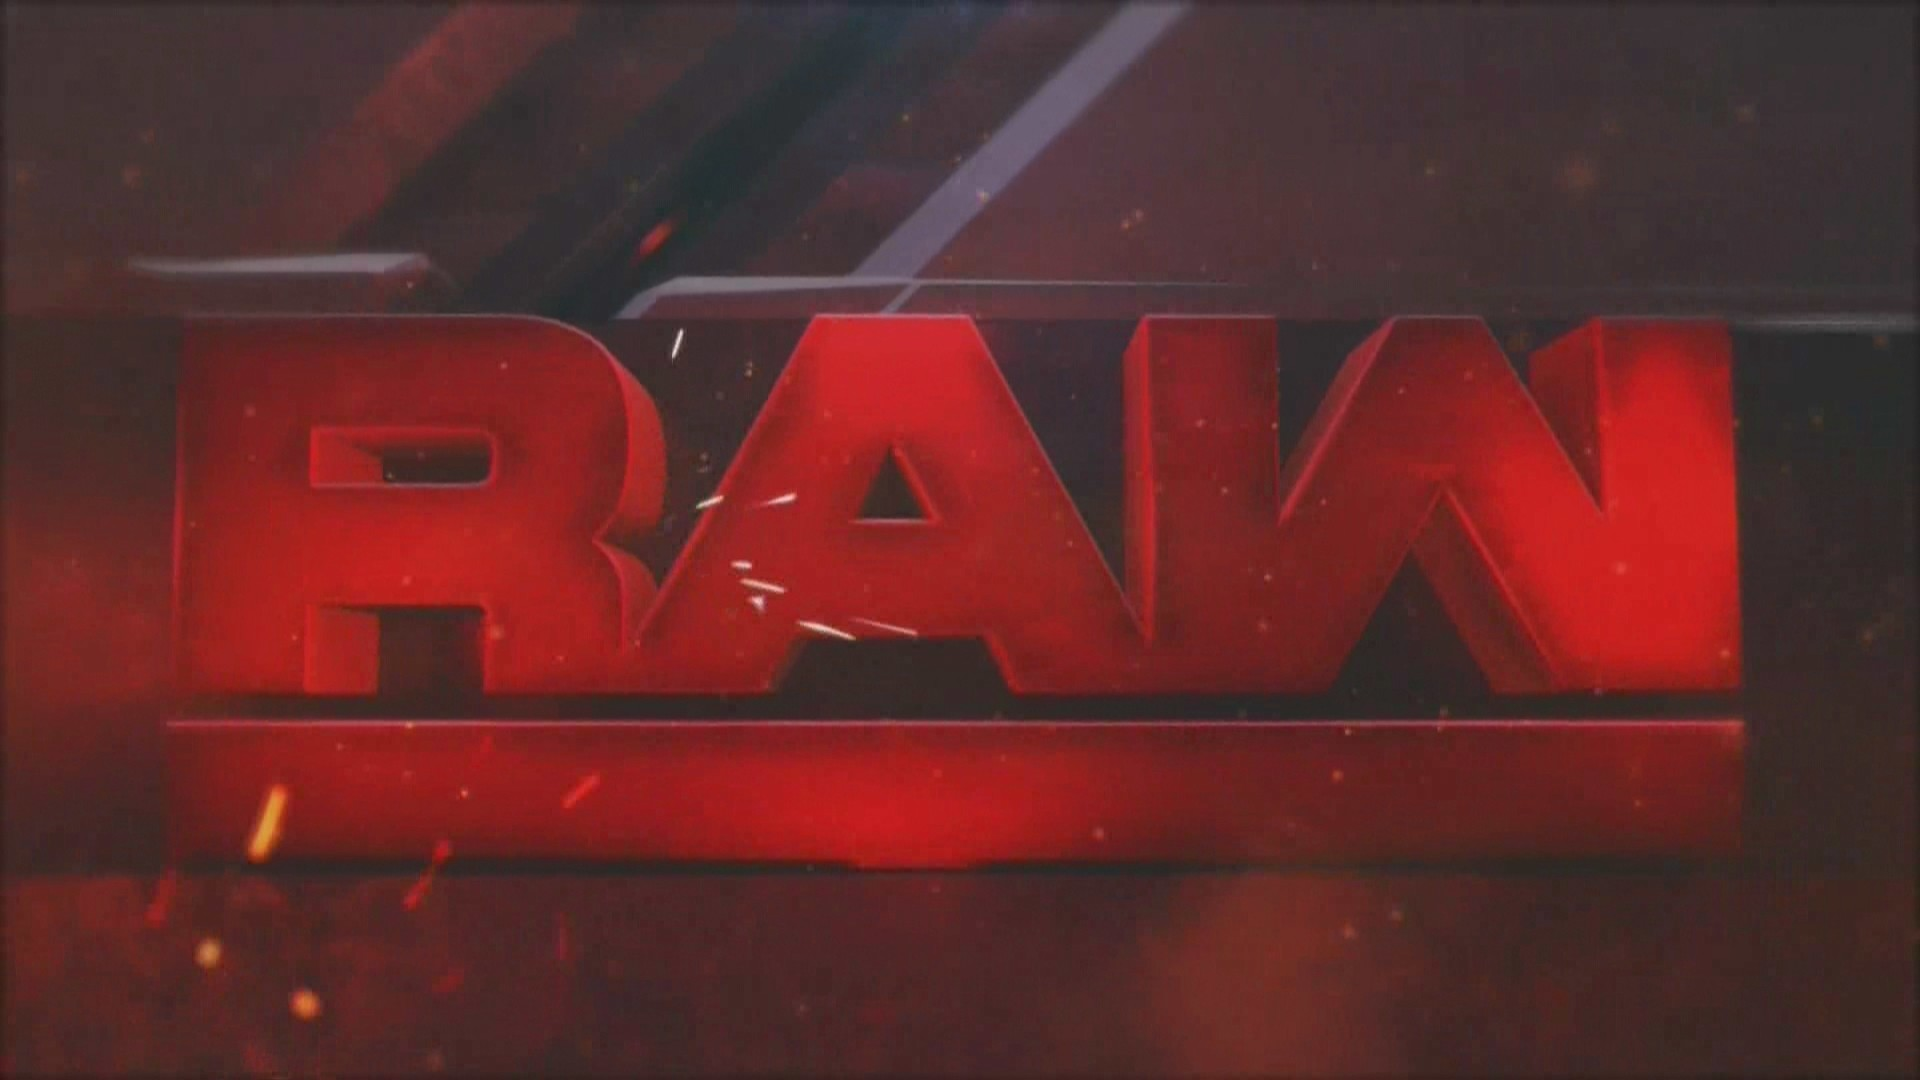 Wwe raw logo wallpaper 82 images - Monday night raw images ...